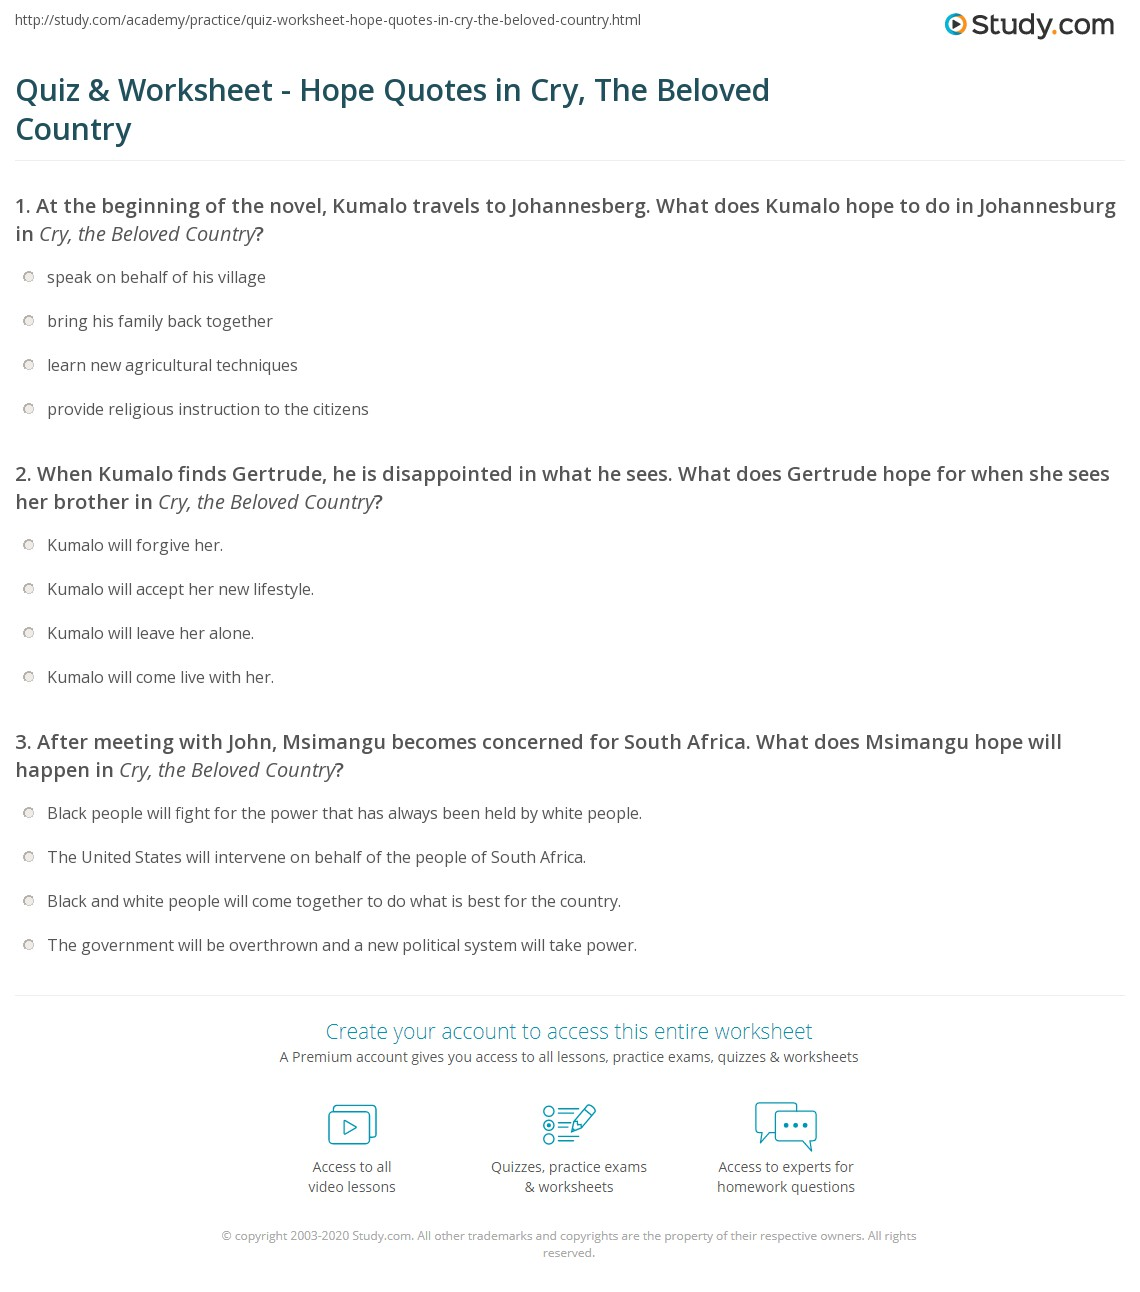 Hope Quotes Quiz & Worksheet  Hope Quotes In Cry The Beloved Country  Study